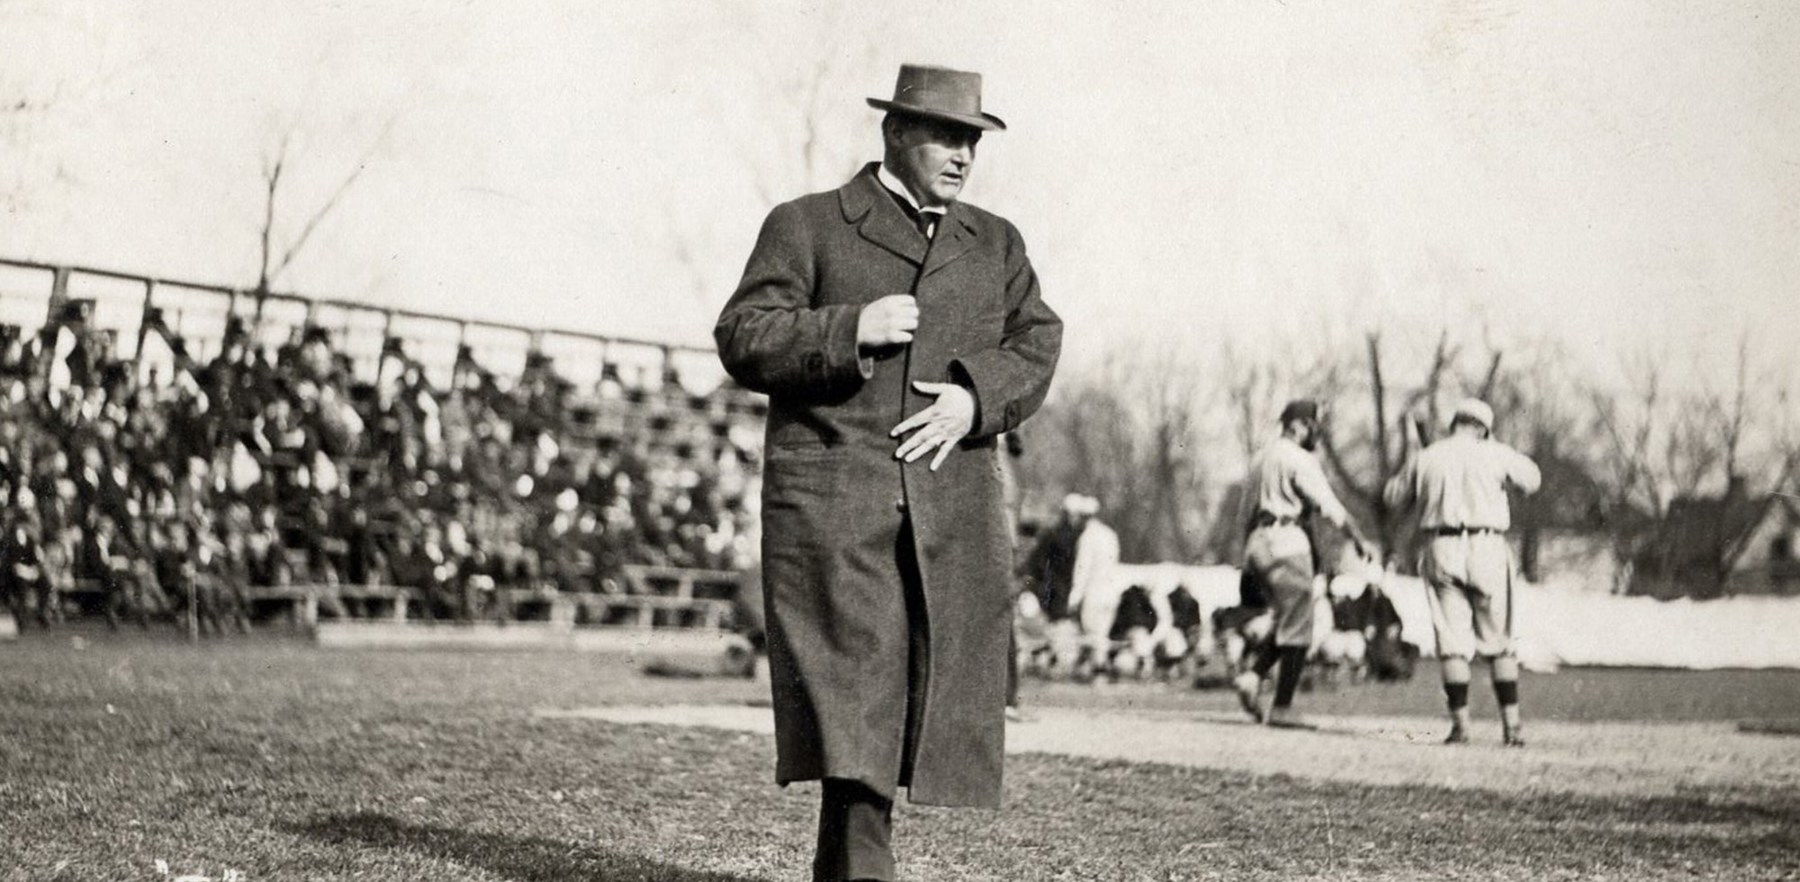 George Huff on the sidelines of an Illini baseball game